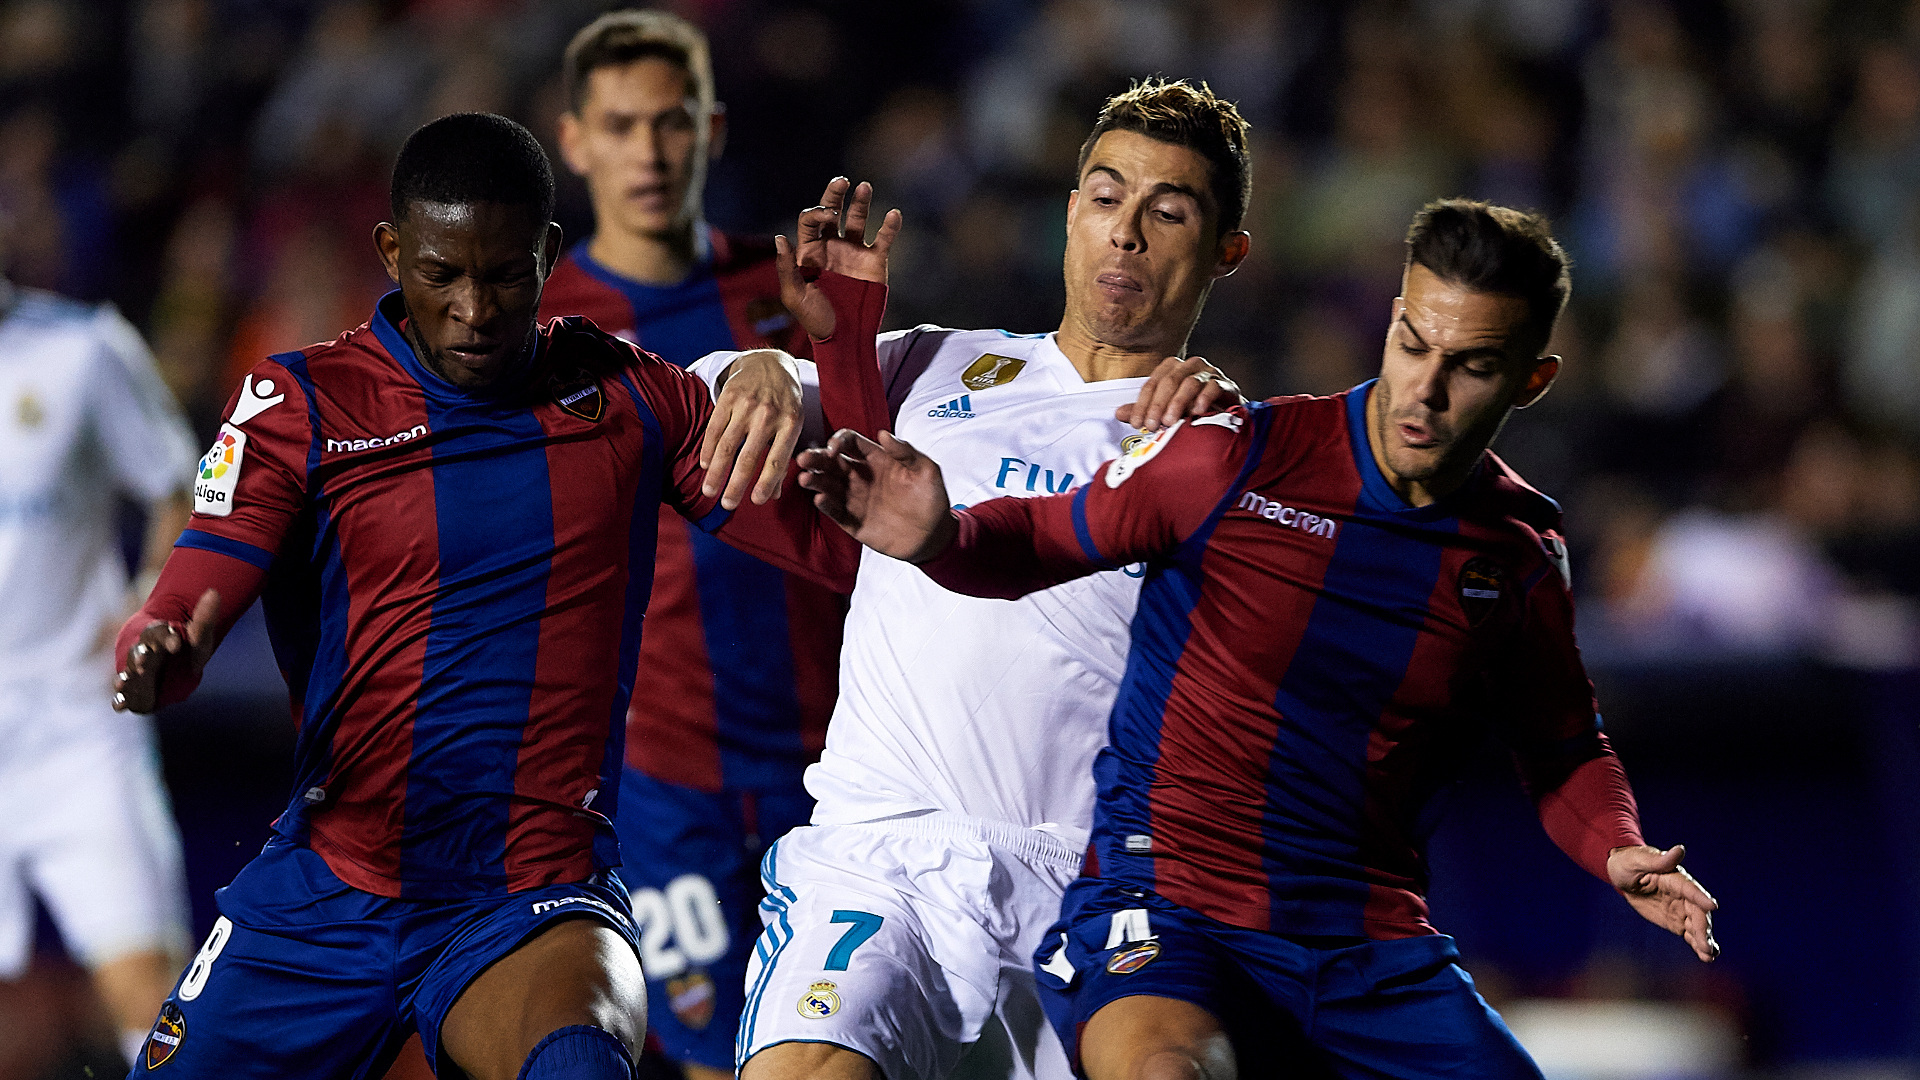 Liga 2017/2018: il Real Madrid pareggia per 2-2 in casa del Levante